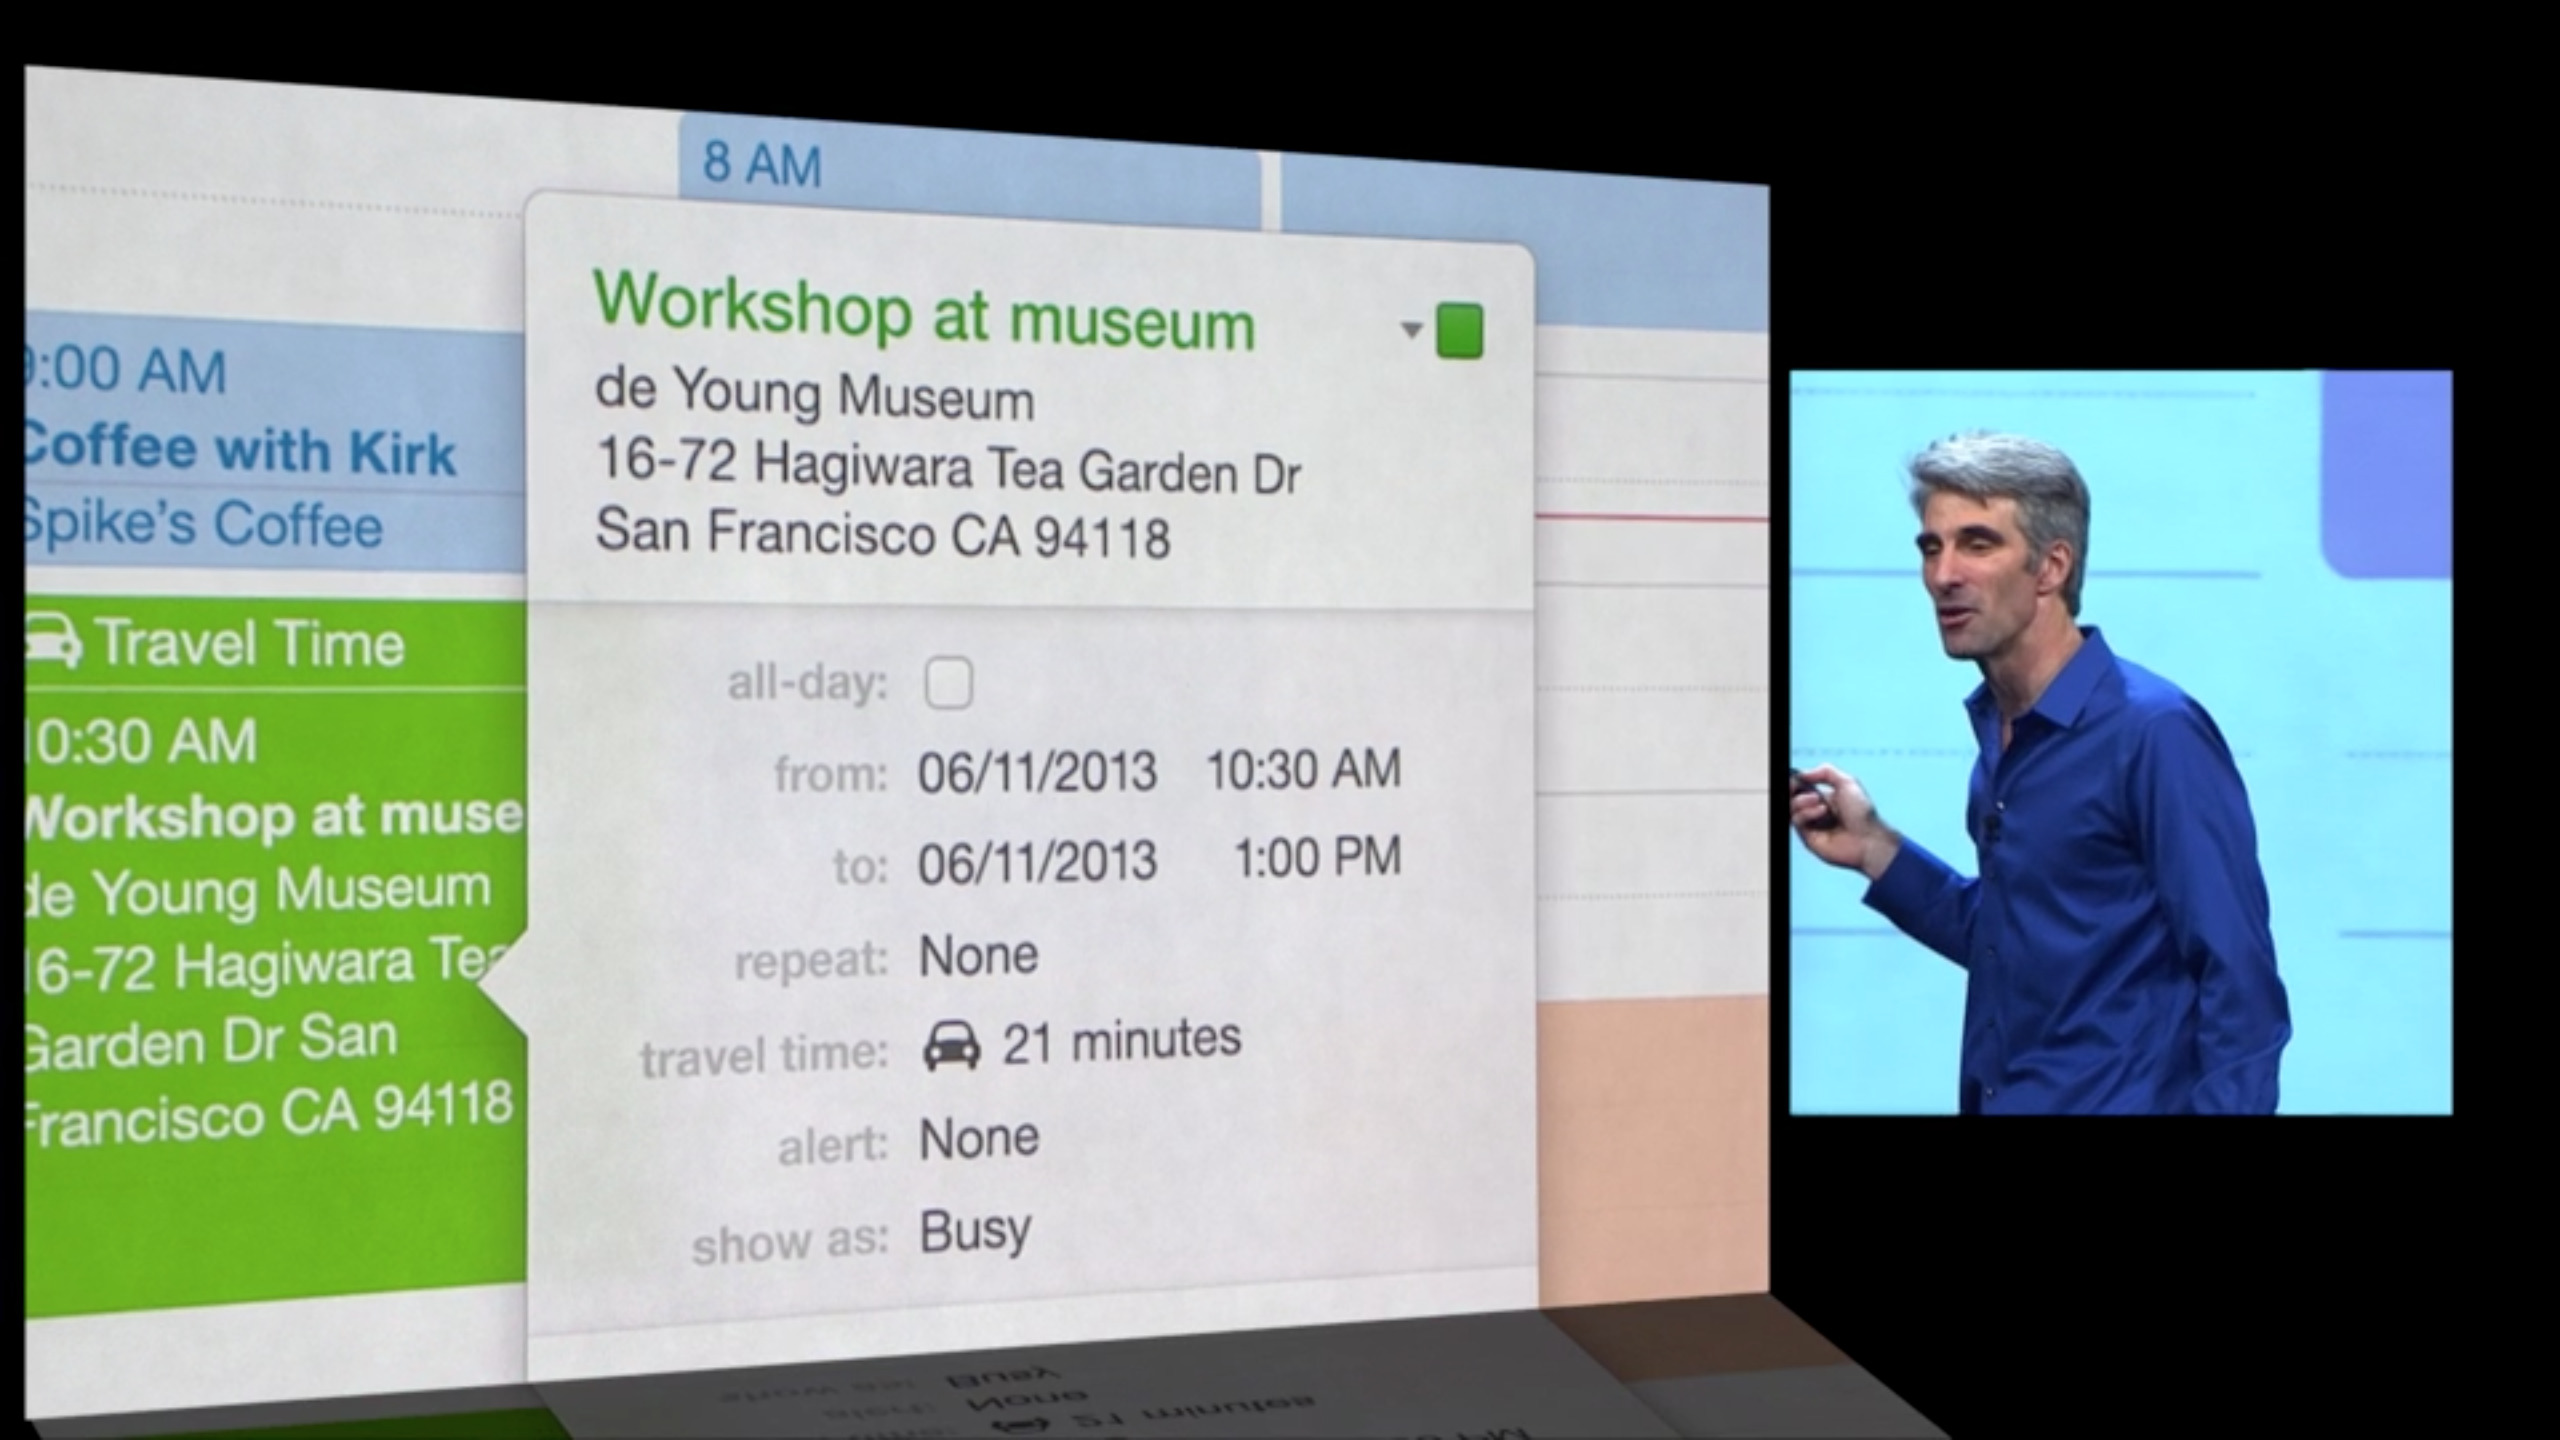 OS X Mavericks - Calendar